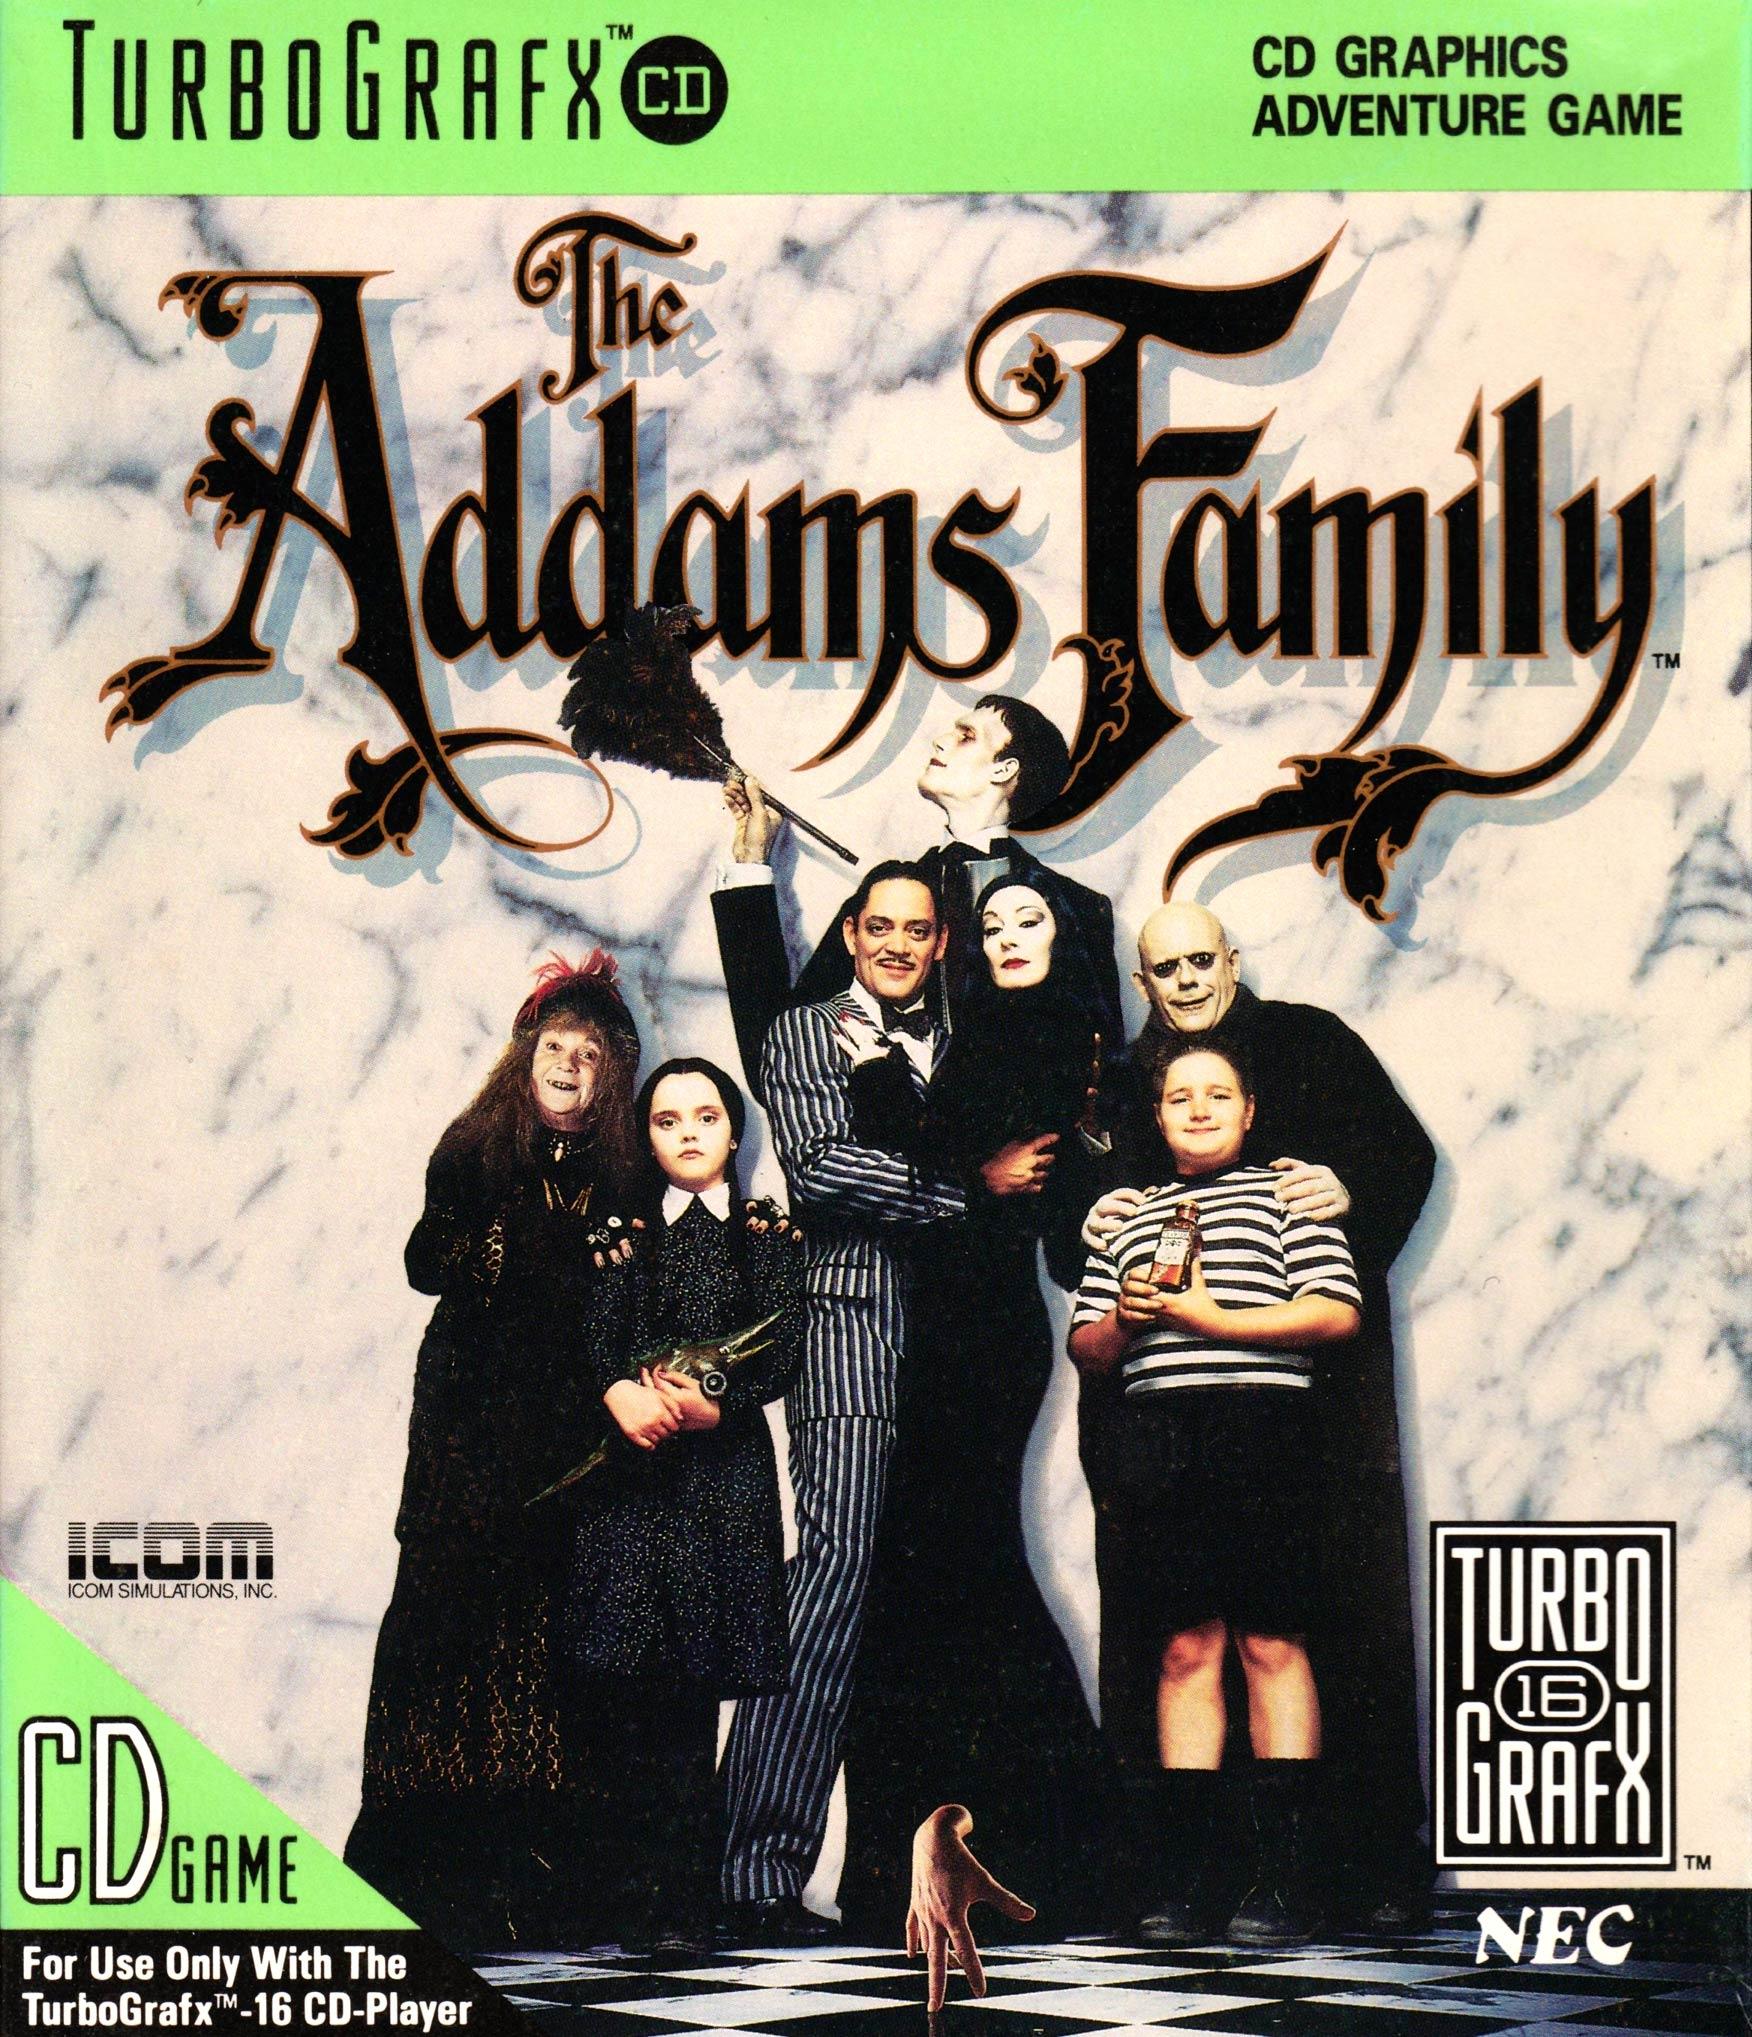 The Addams Family - The PC Engine Software Bible